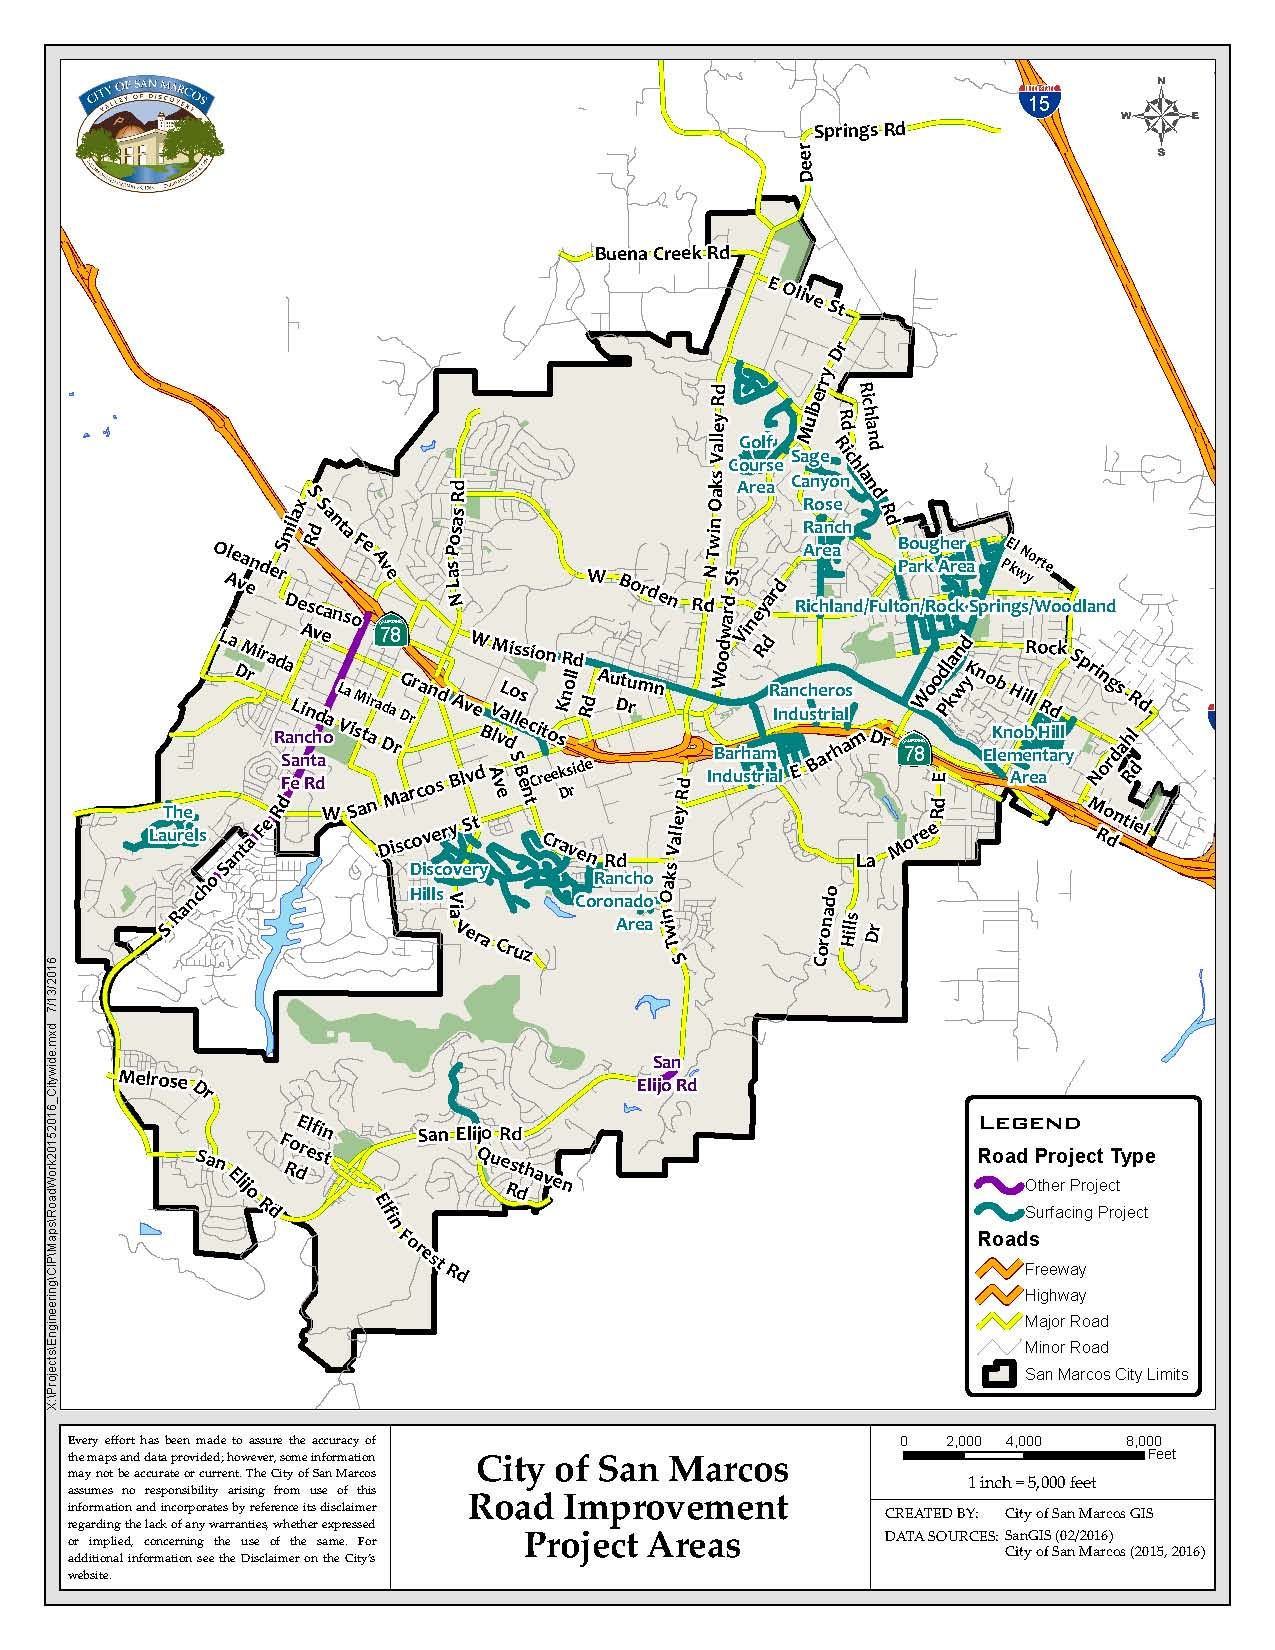 San Marcos streets to receive chip and slurry seal | News ... on palomar estates west map, izabal map, austin map, texas map, raymondville map, sandia map, chalatenango map, segerstrom map, oxnard map, mapquest san antonio map, fallbrook california map, quitupan map, los robles map, south coast metro map, central san diego map, wimberley tx map, mission gorge map, mt laguna map, tarapaca map,